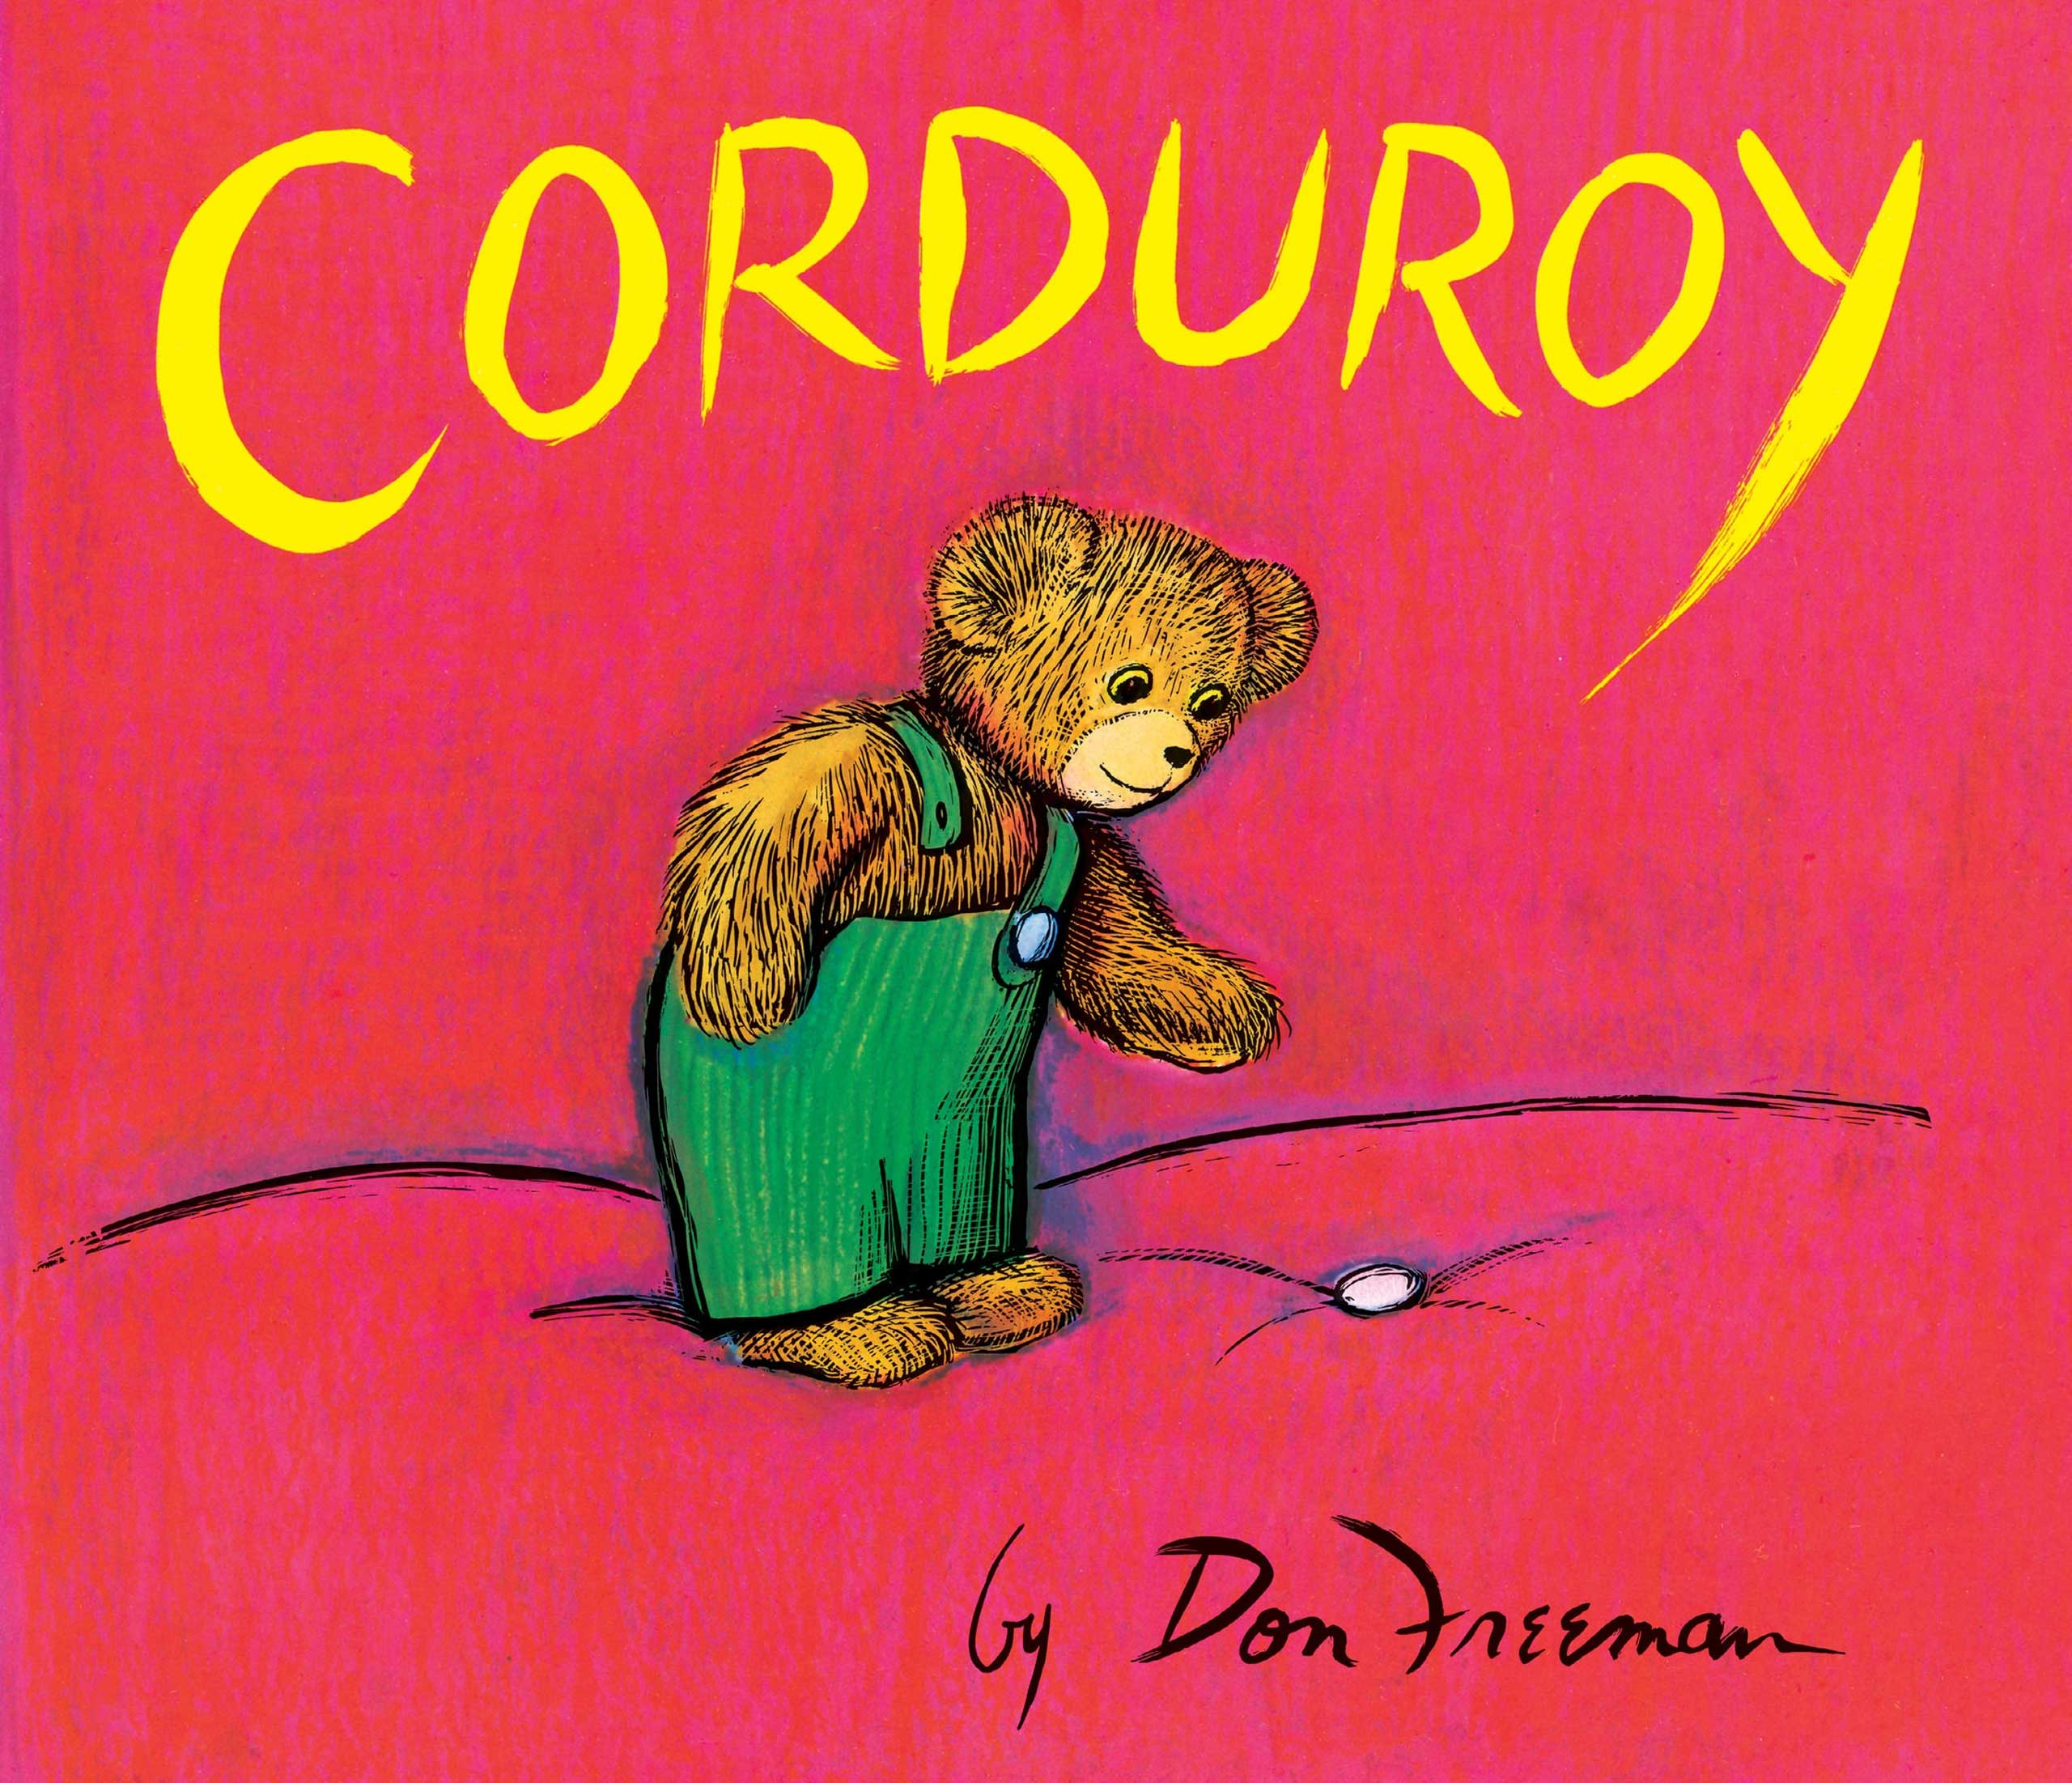 Corduroy, by Don Freeman.                                                                                                                            In the middle of the night, a toy bear comes to life and hops off the shelf to replace his missing button.                                                                                                                            Buy now: Corduroy